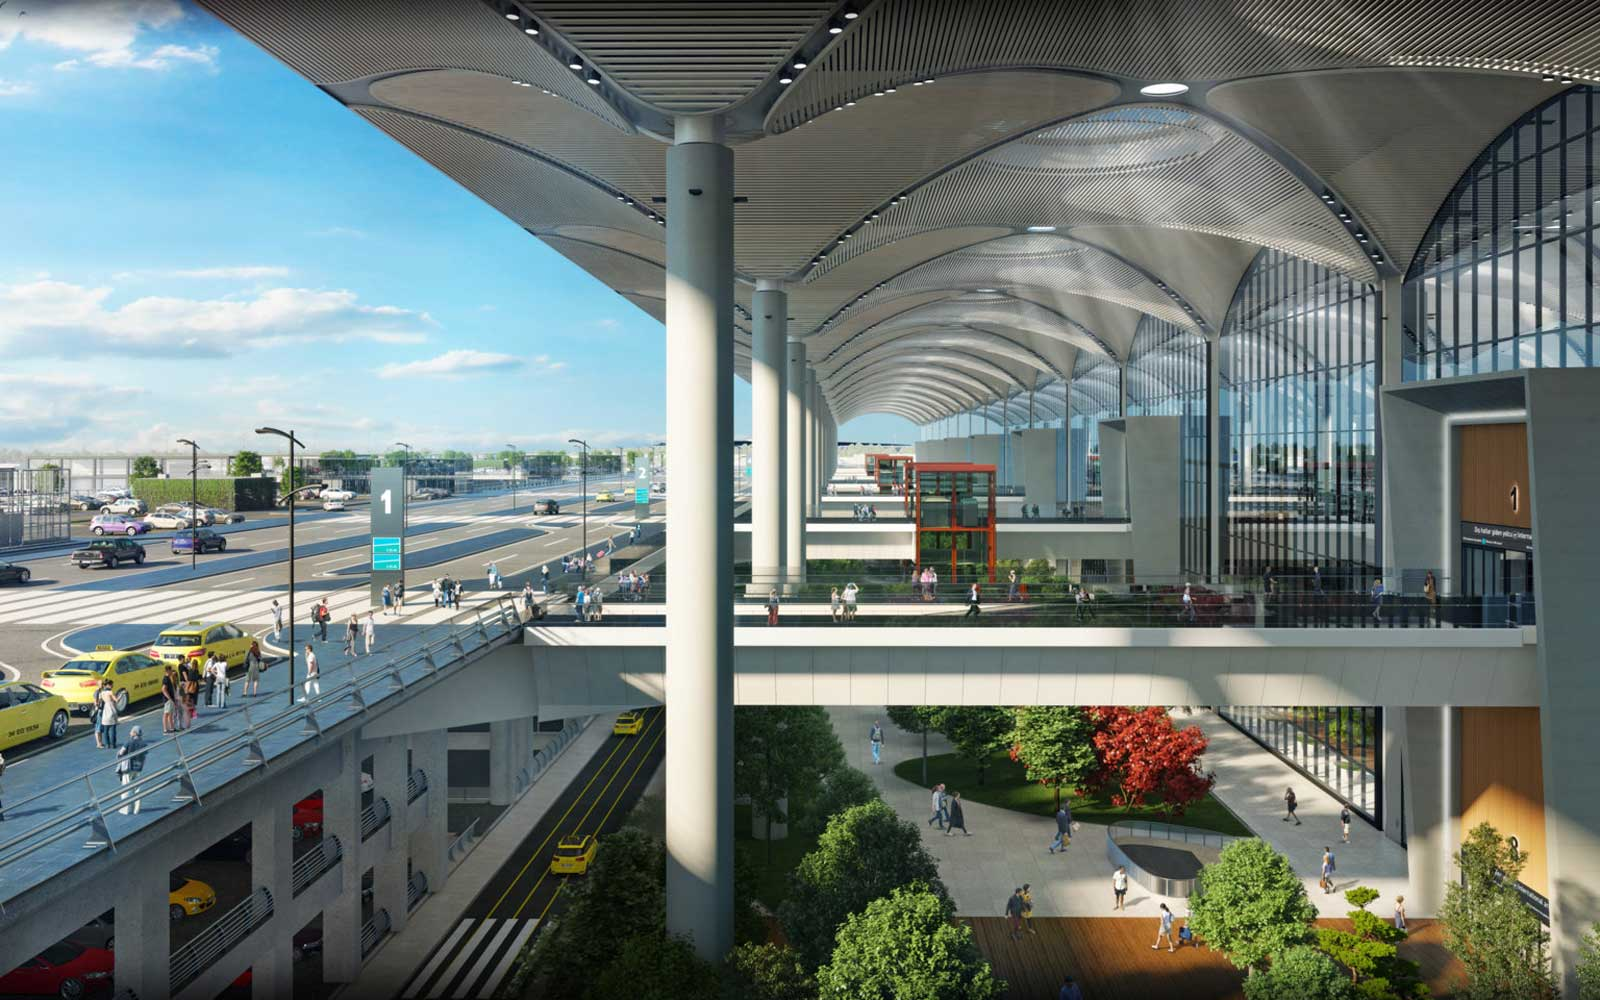 An airport city will also provide shopping complexes, housing, and more.